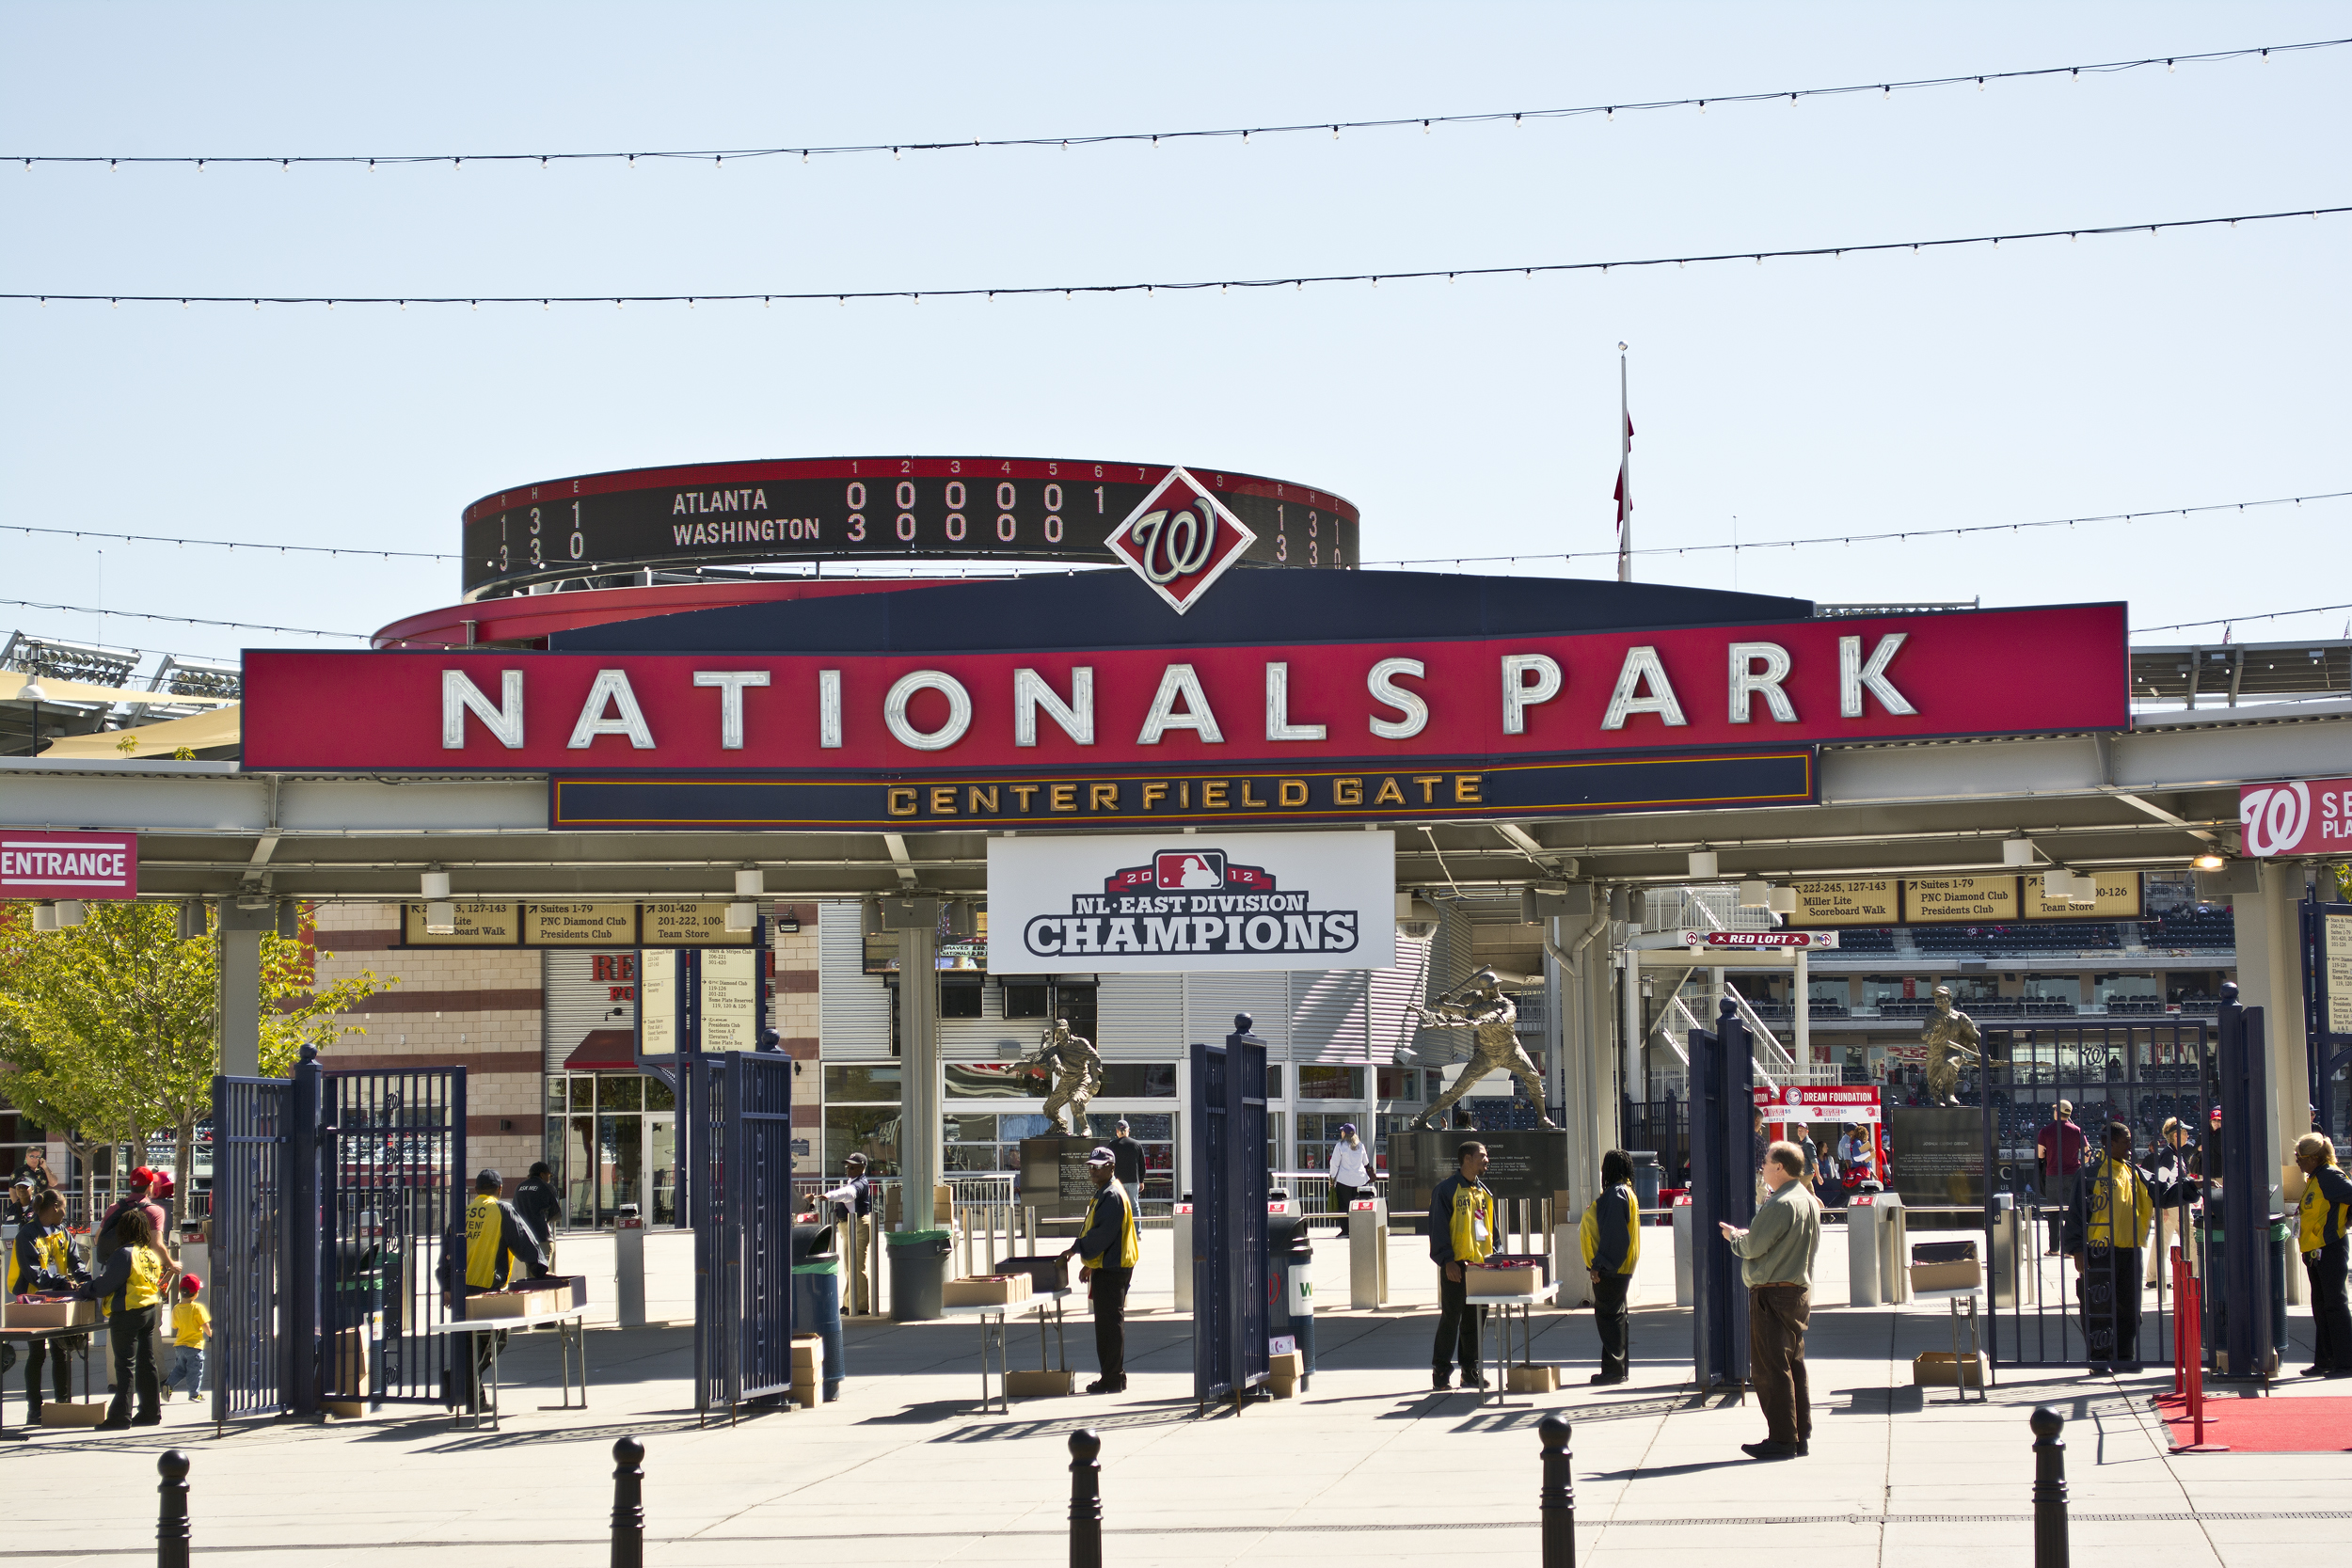 File:Nationals Park - center field gate - close - 2013-09